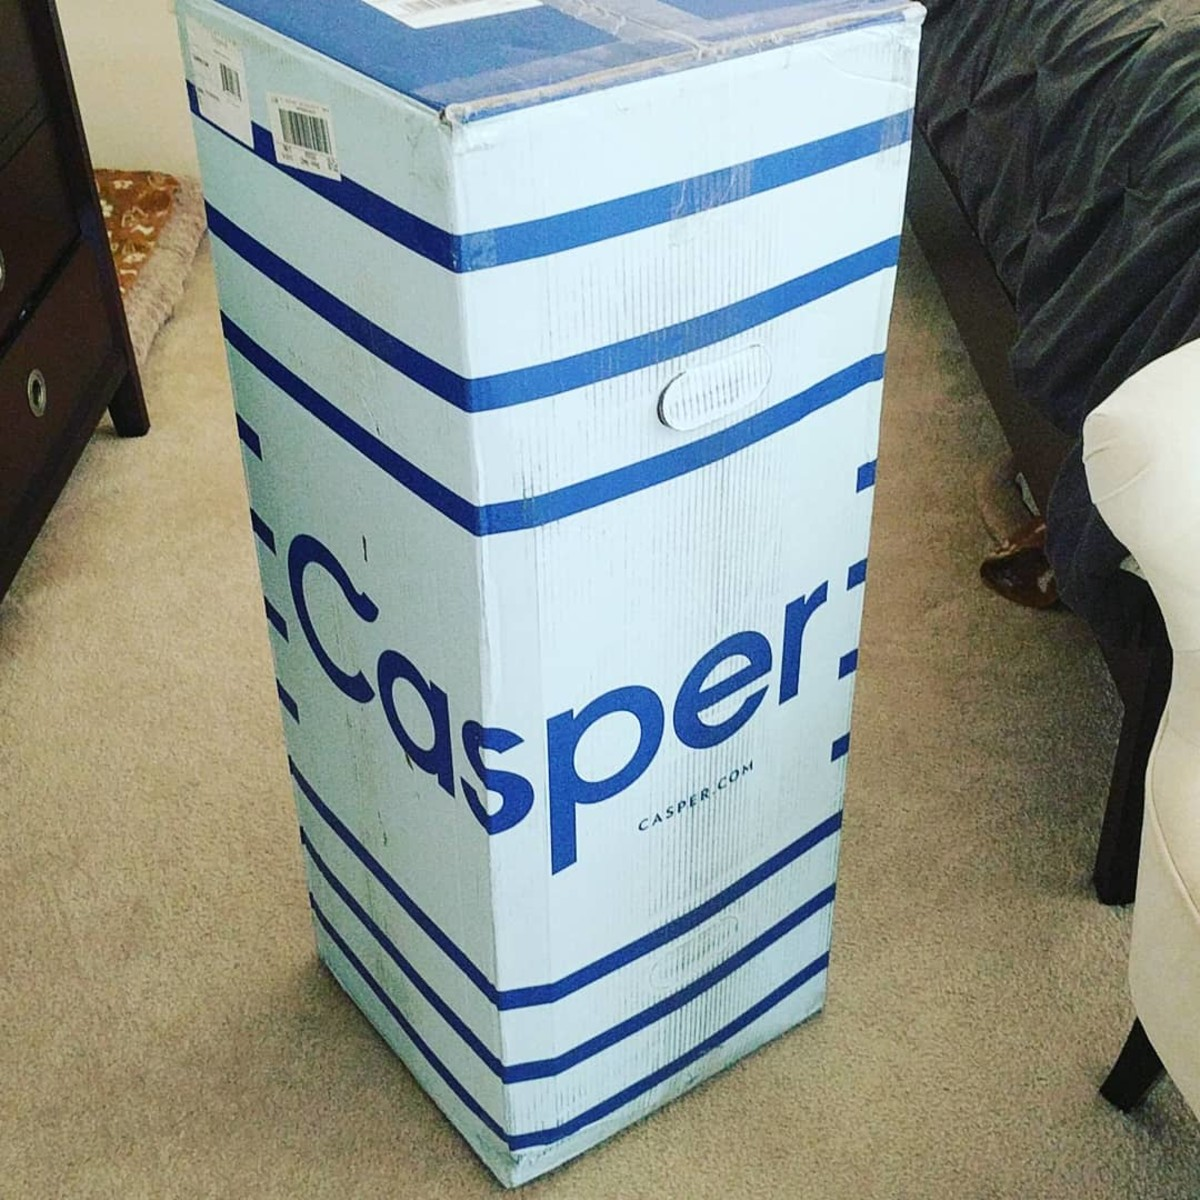 My Casper arrived in a sturdy cardboard box - surprisingly small for a mattress!